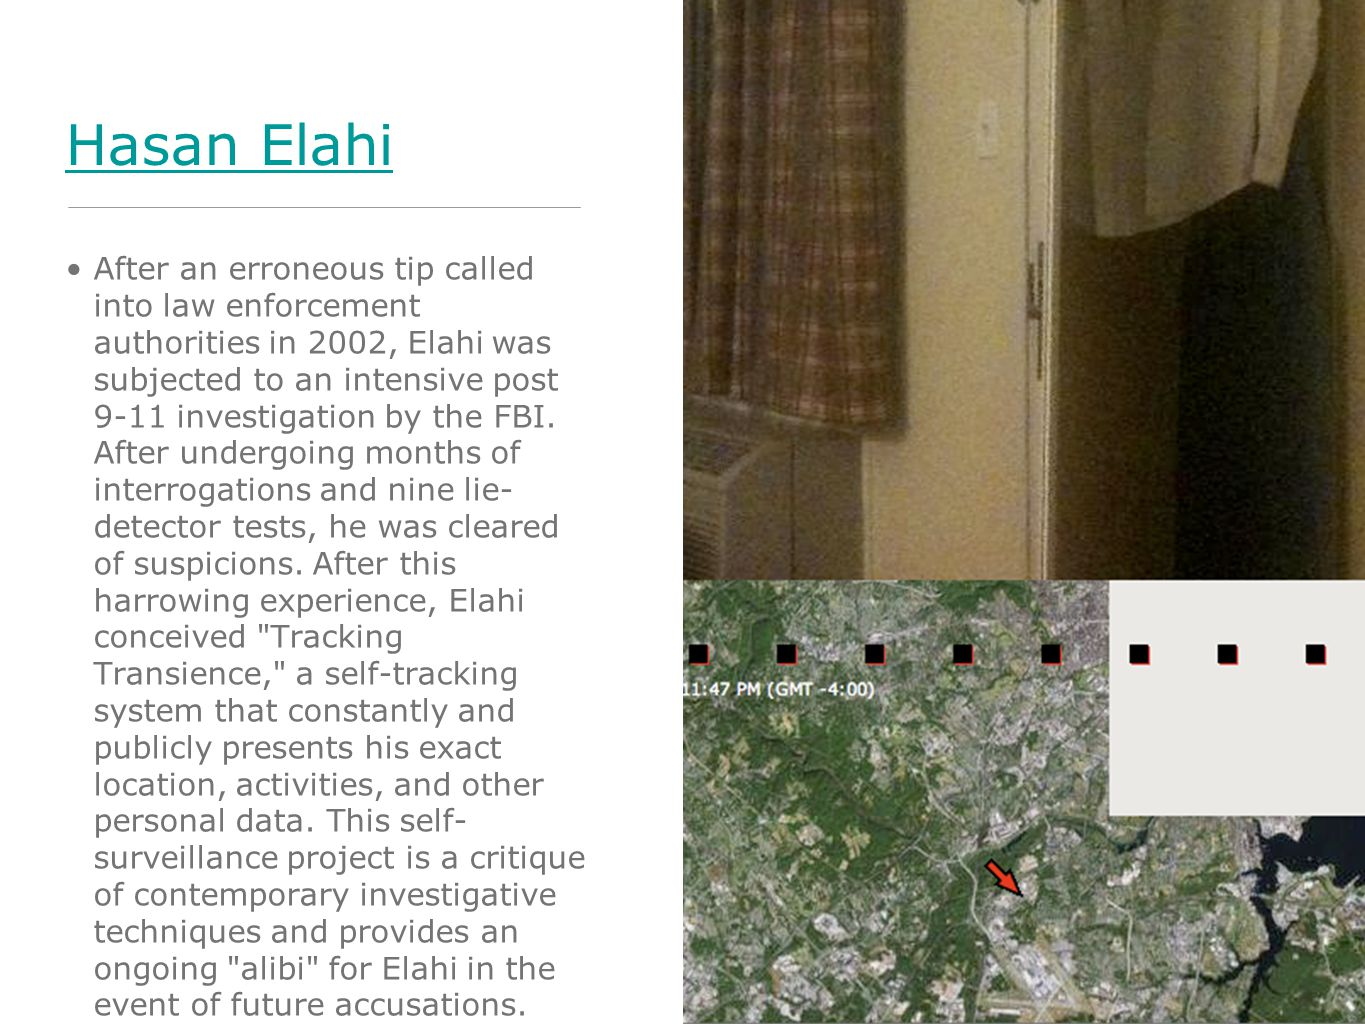 Hasan Elahi After an erroneous tip called into law enforcement authorities in 2002, Elahi was subjected to an intensive post 9-11 investigation by the FBI.